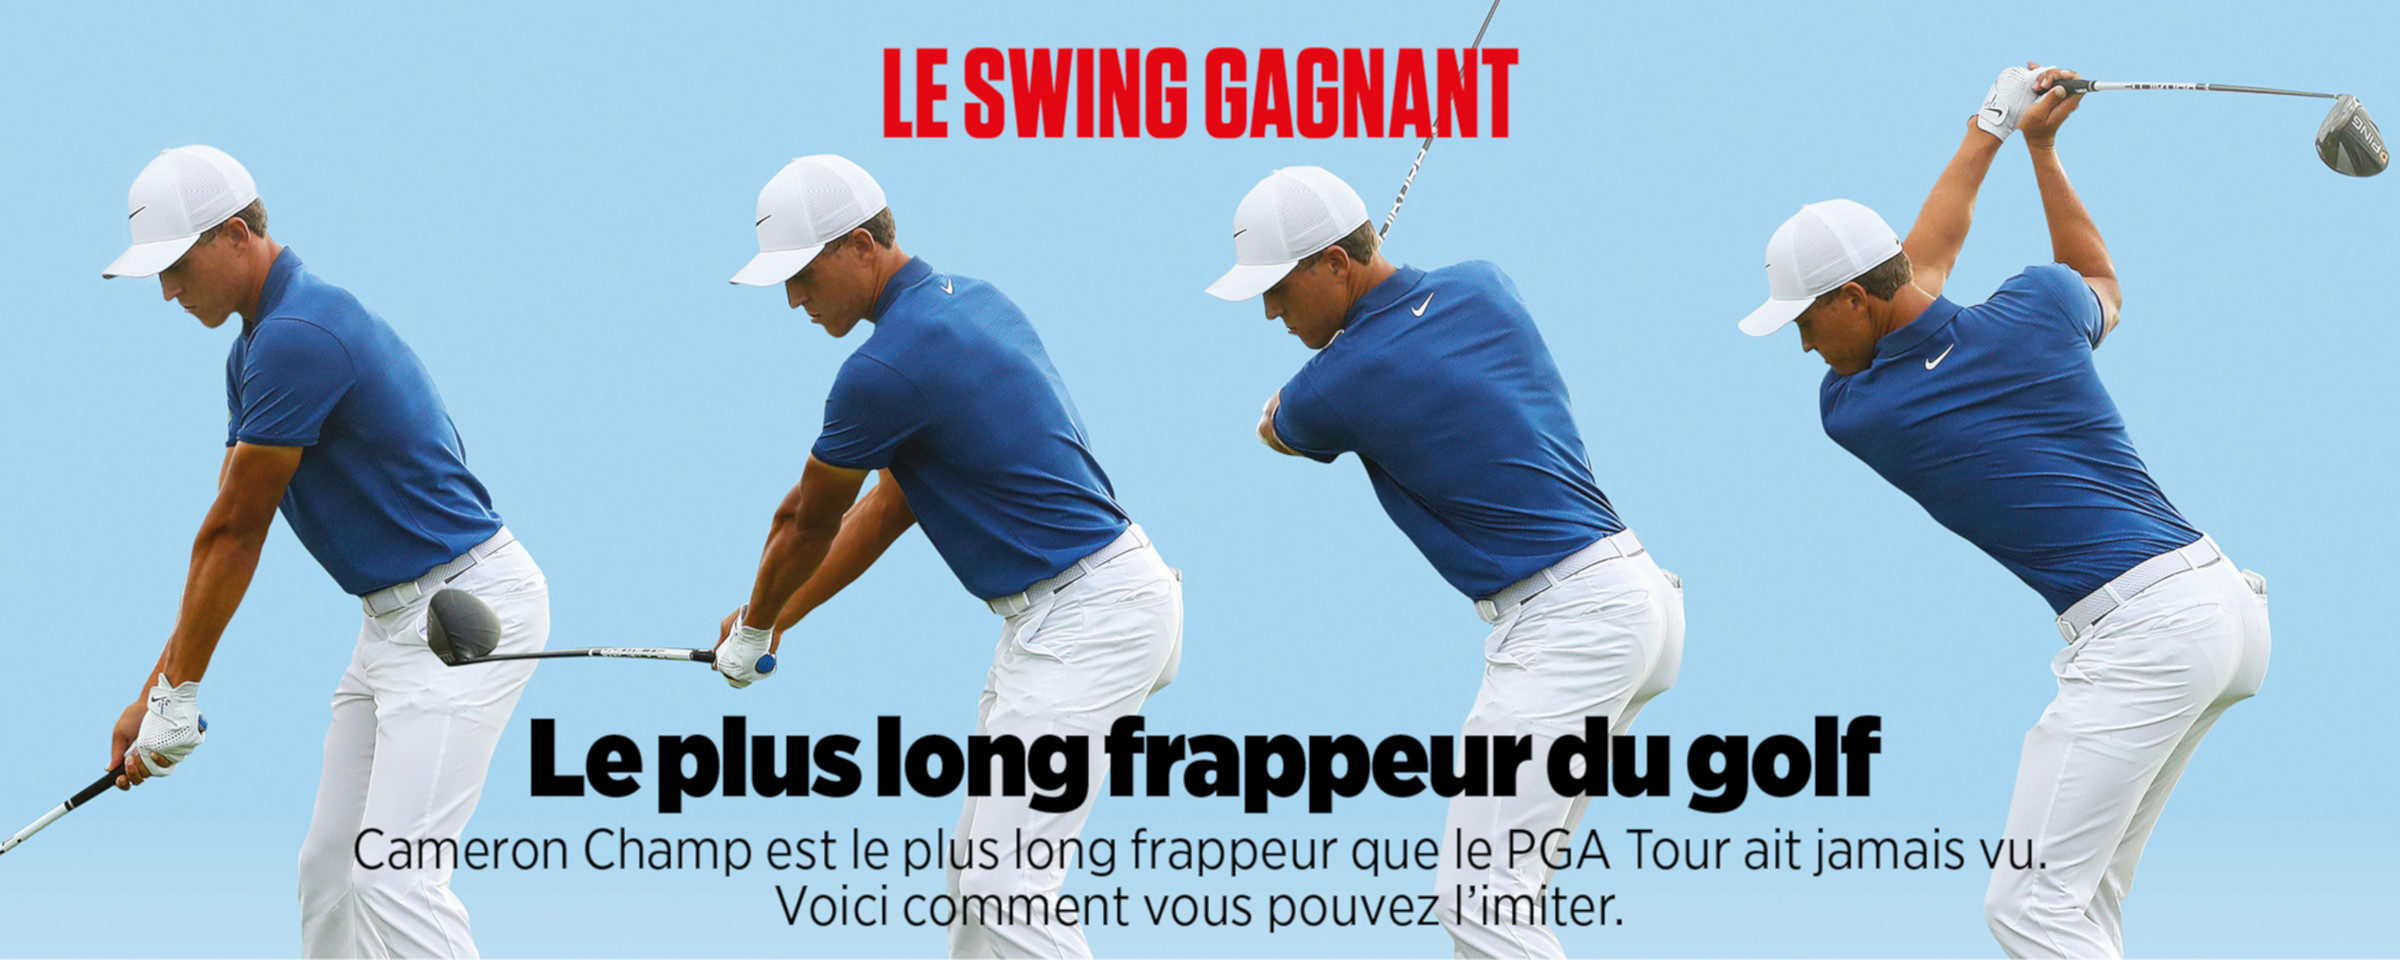 Le swing gagnant